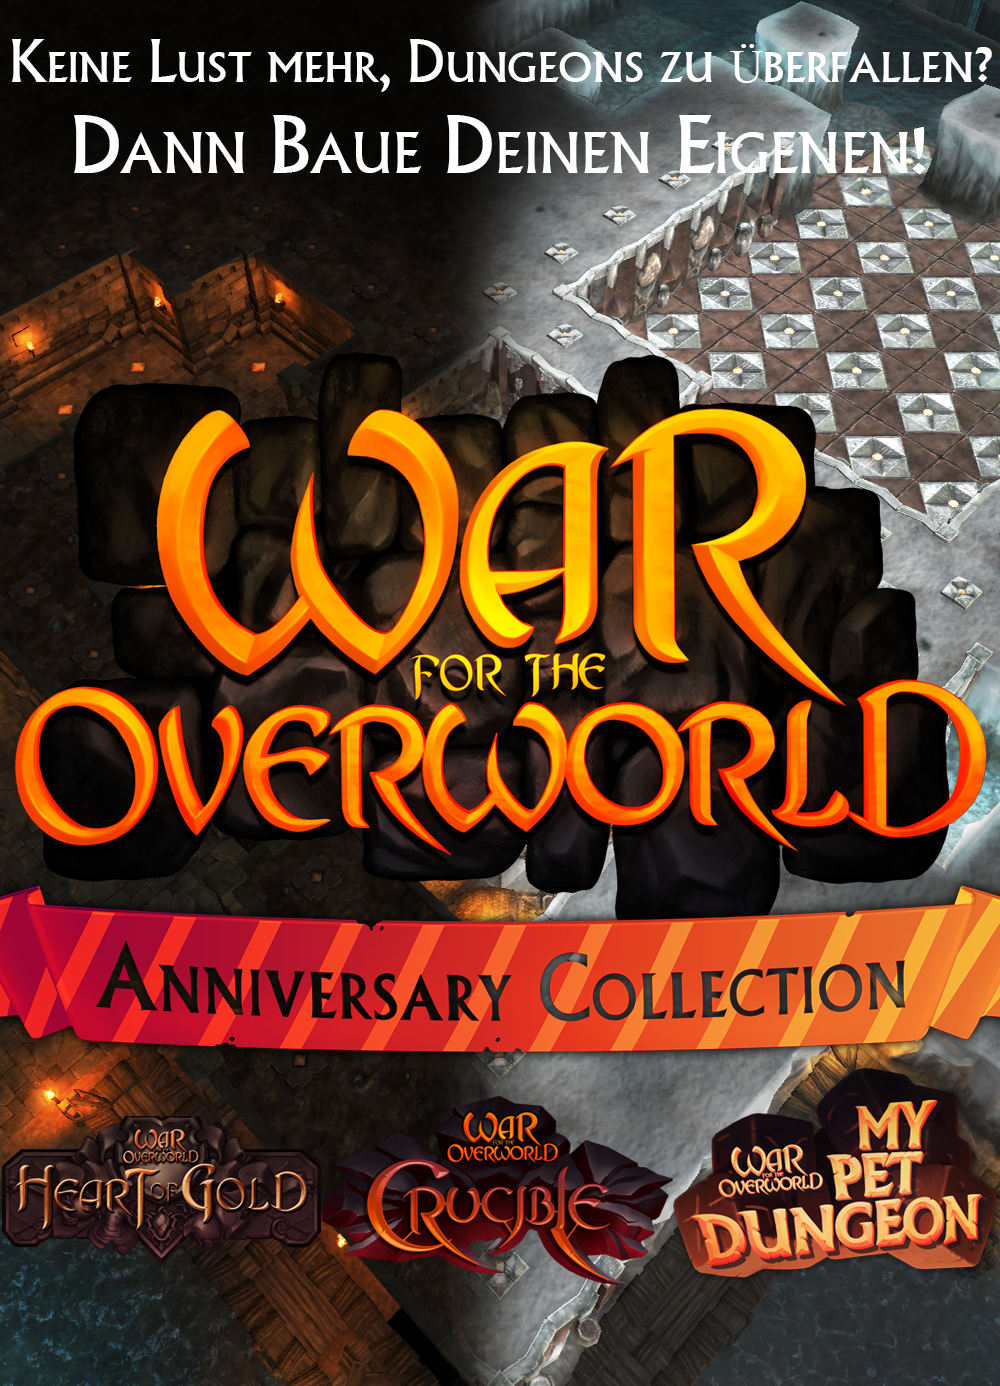 War for the Overworld - Jubiläums Sammlung [PC/Mac Code - Steam] Mac-sammlung